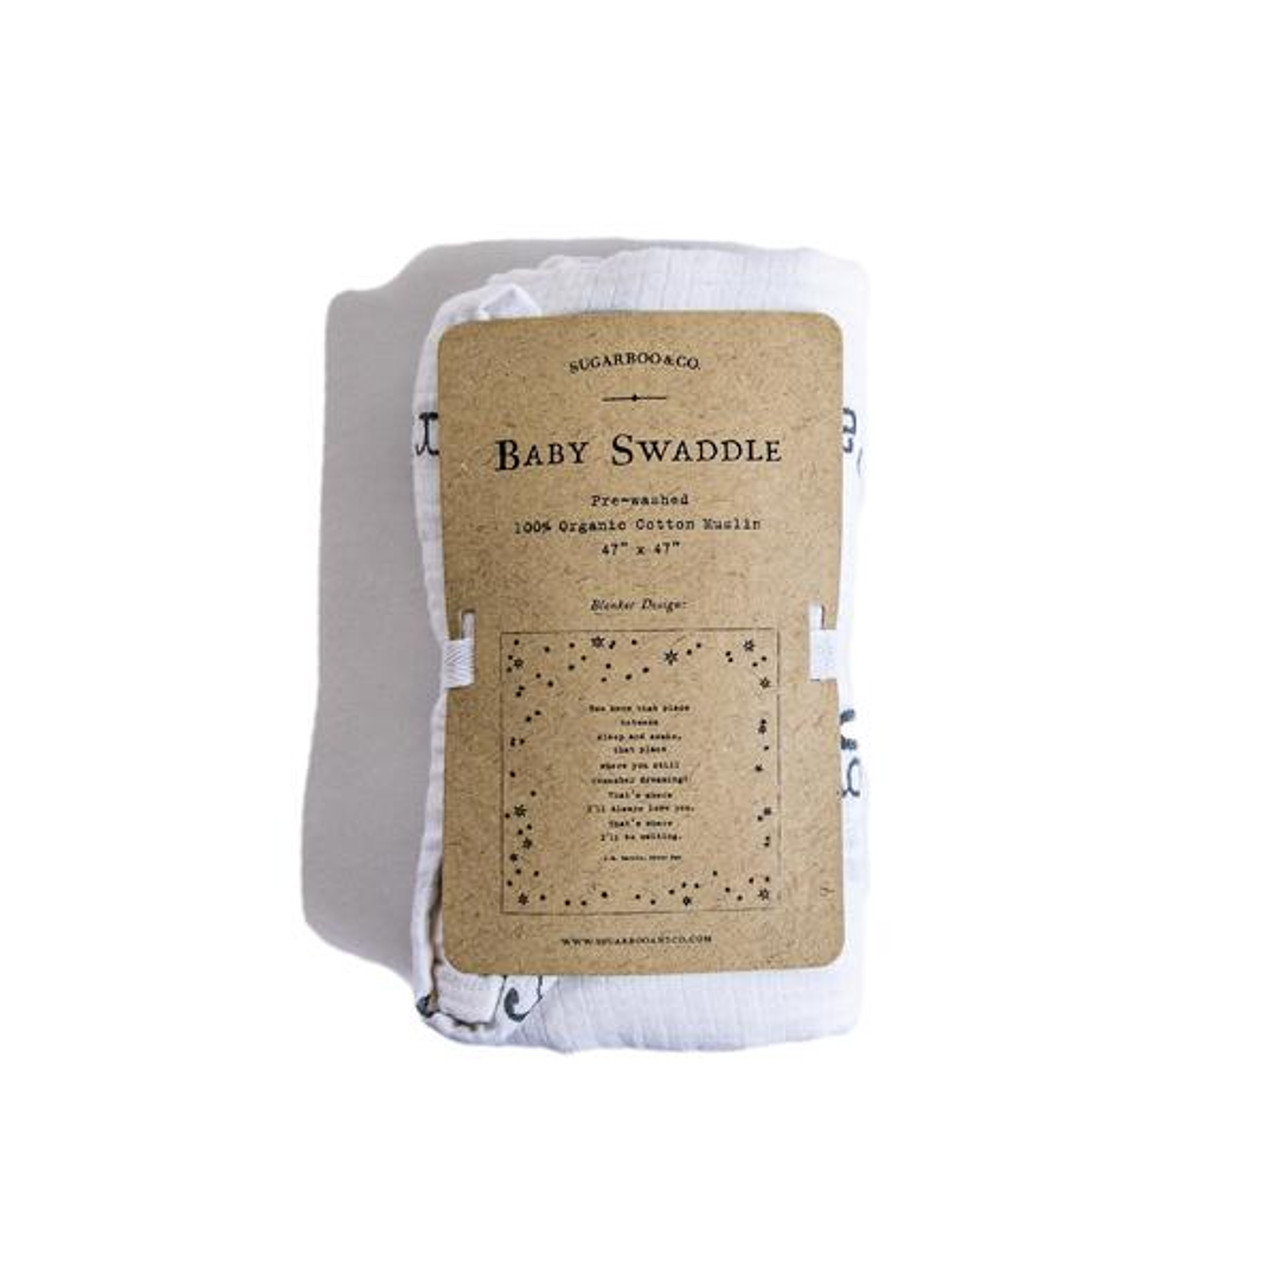 baby swaddle - peter pan